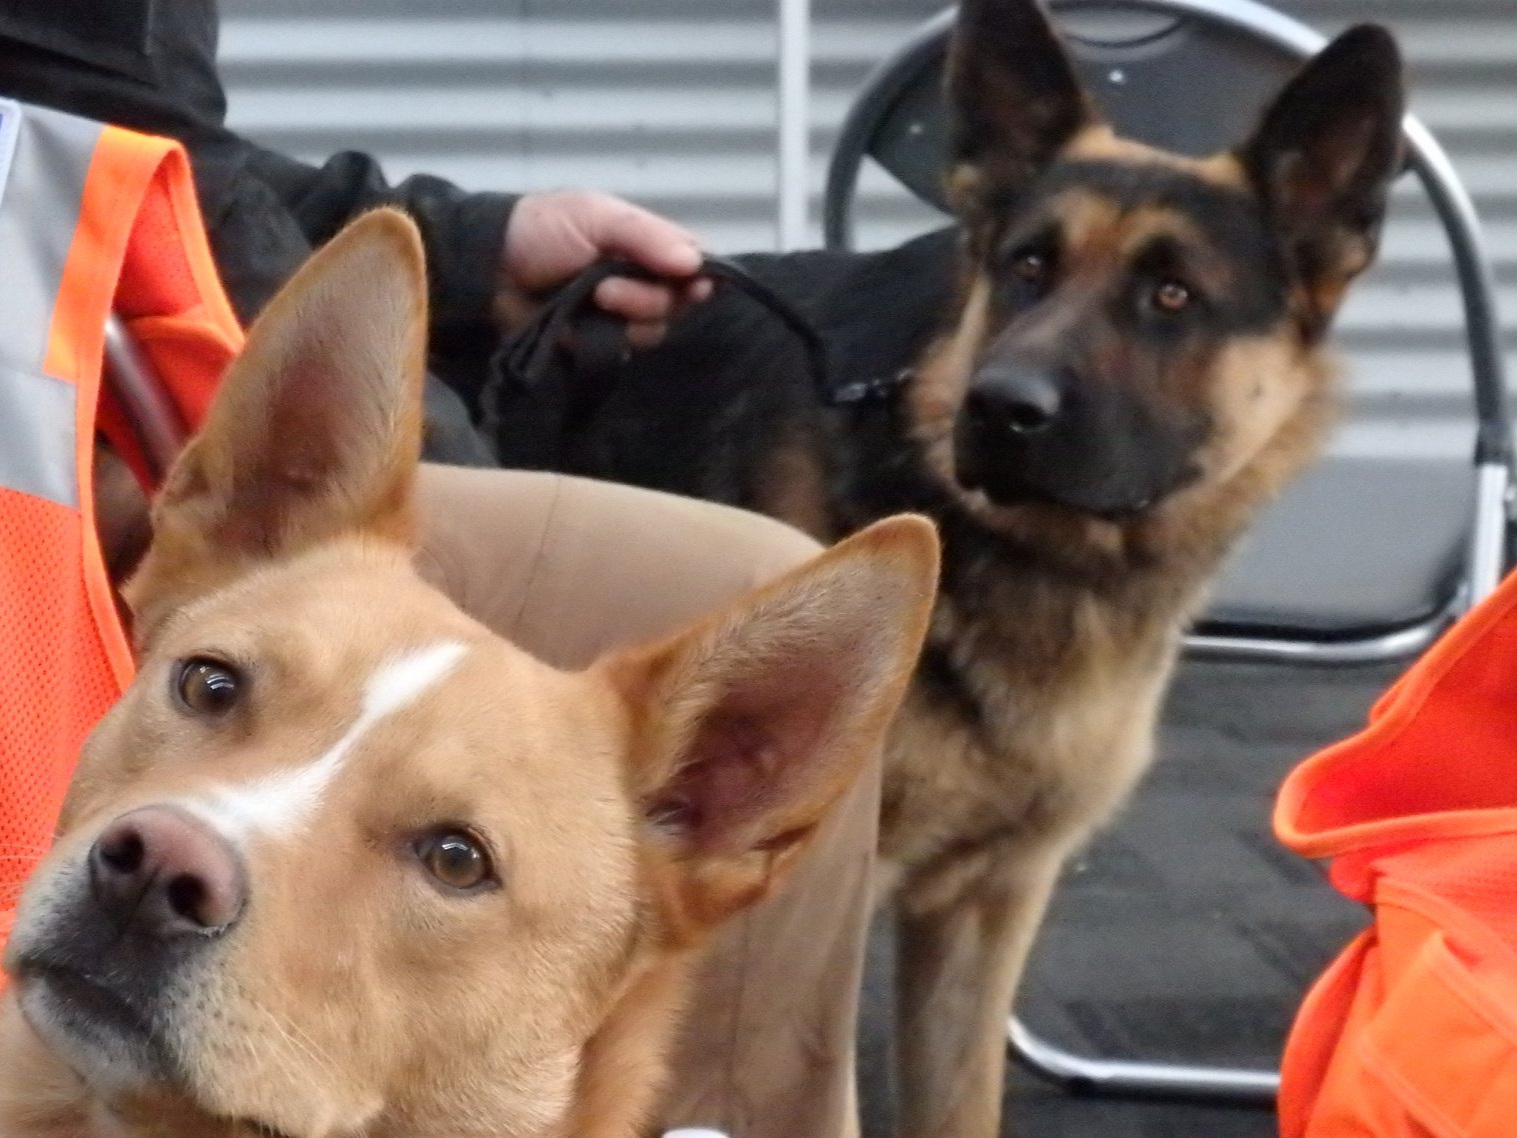 About - Find out about our organisation,mission, our methods, and the reasonswe utilise search dogs.